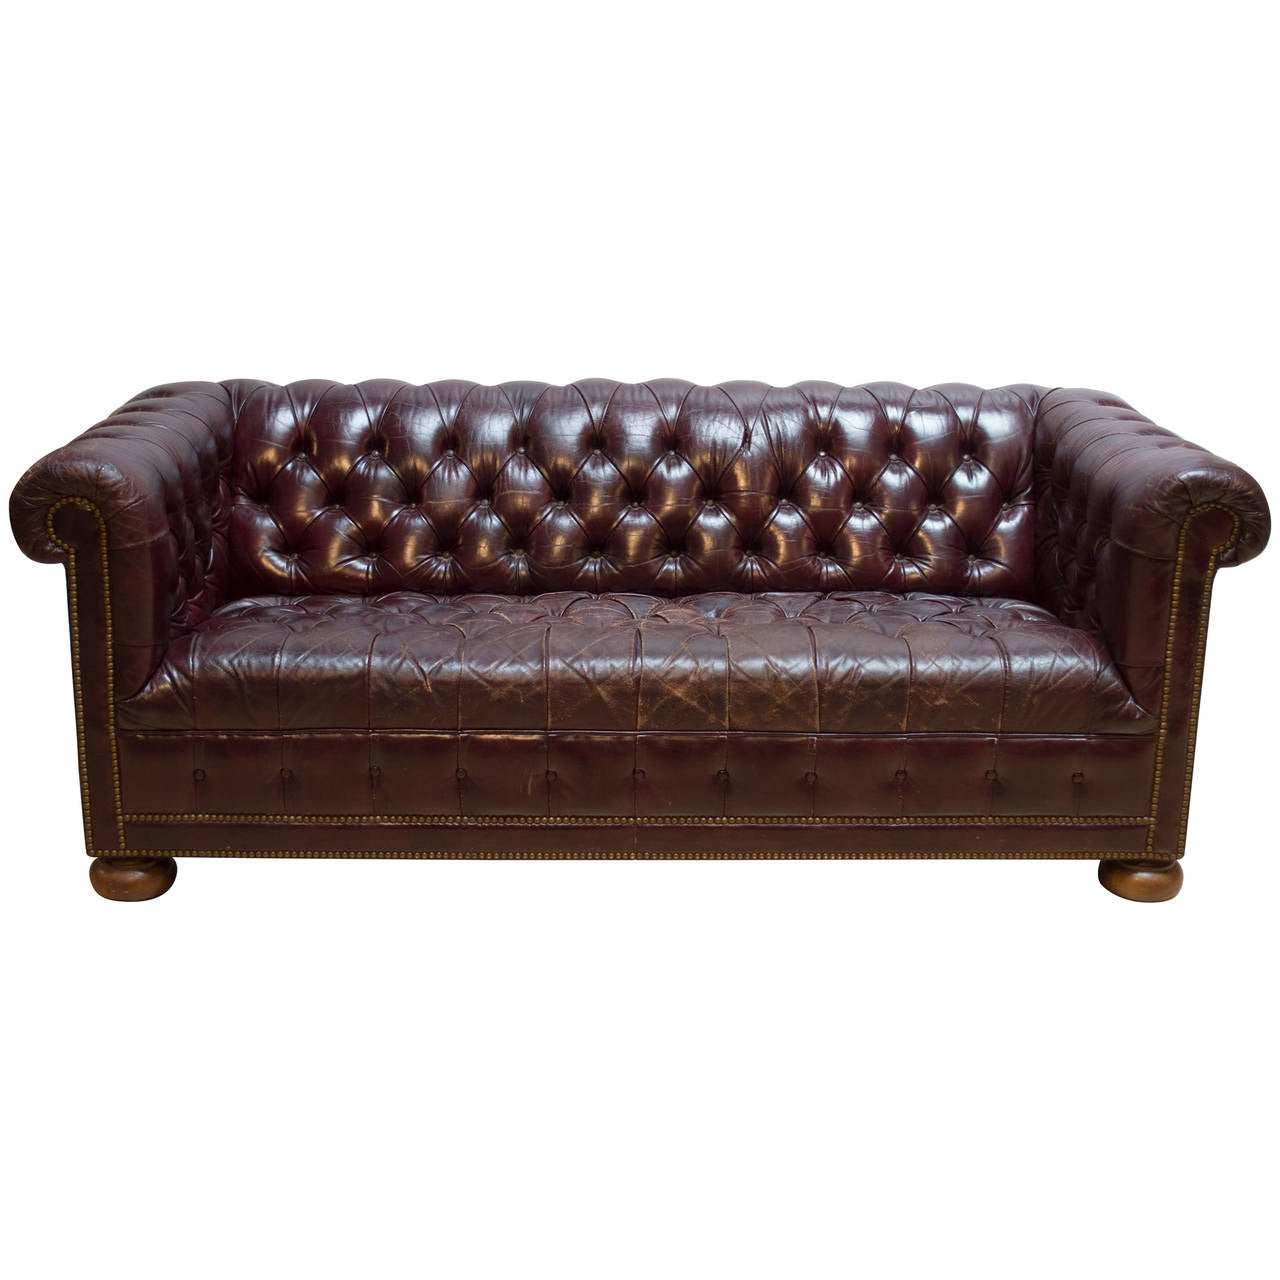 tan furniture sofa how much does reupholstering a cost uk vintage leather chesterfield at 1stdibs